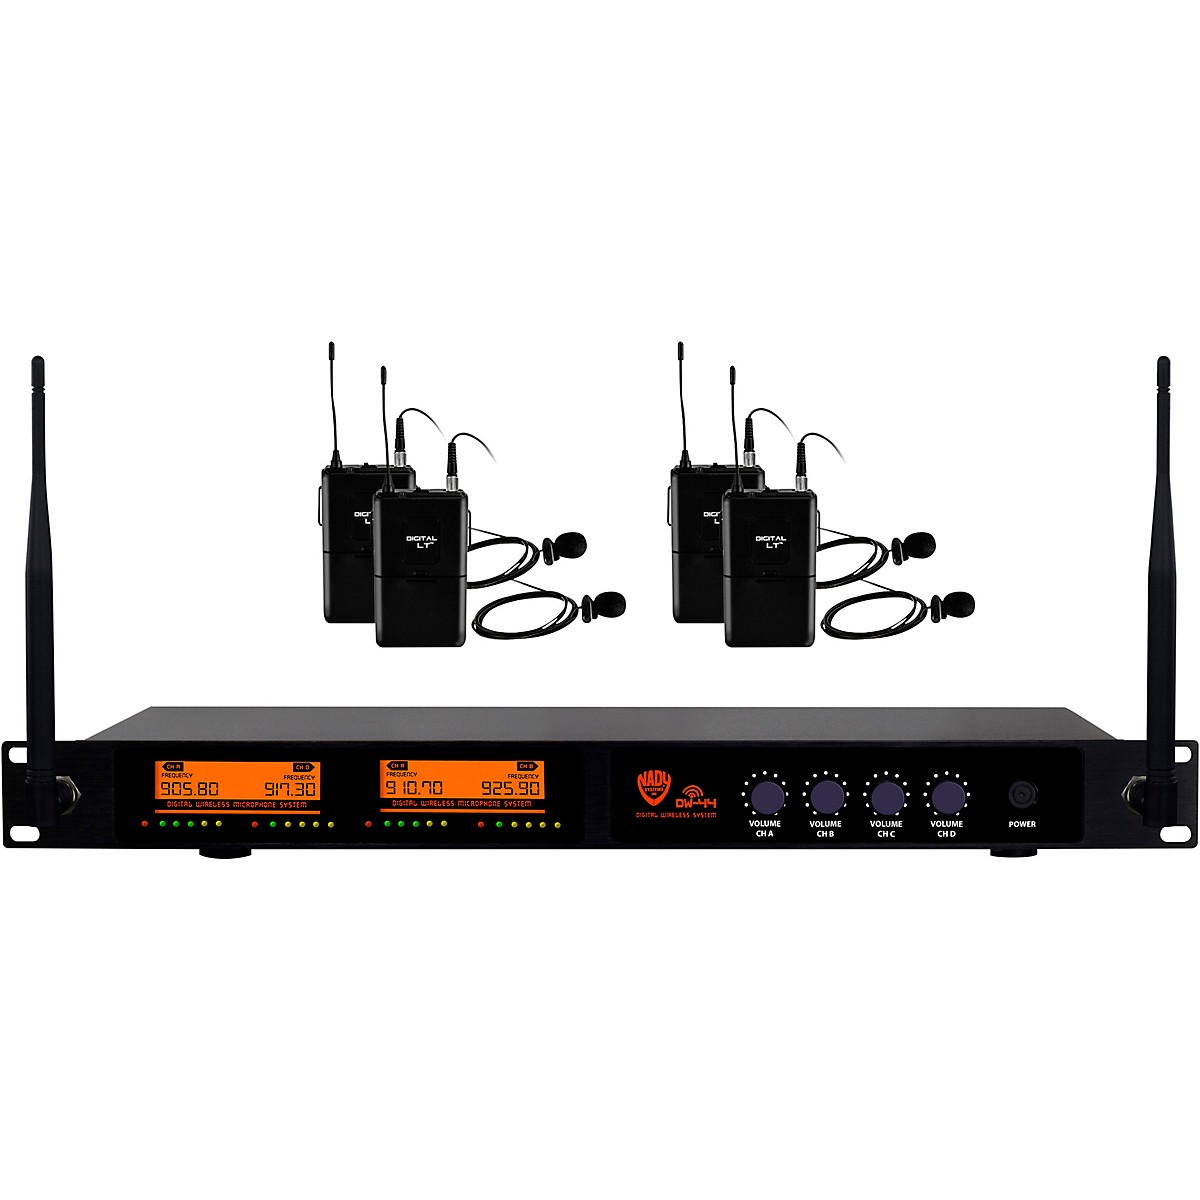 Nady Nady DW-44 Quad Digital Wireless Lapel Microphone System with Four Fixed UHF Frequencies with QPSK Modulation